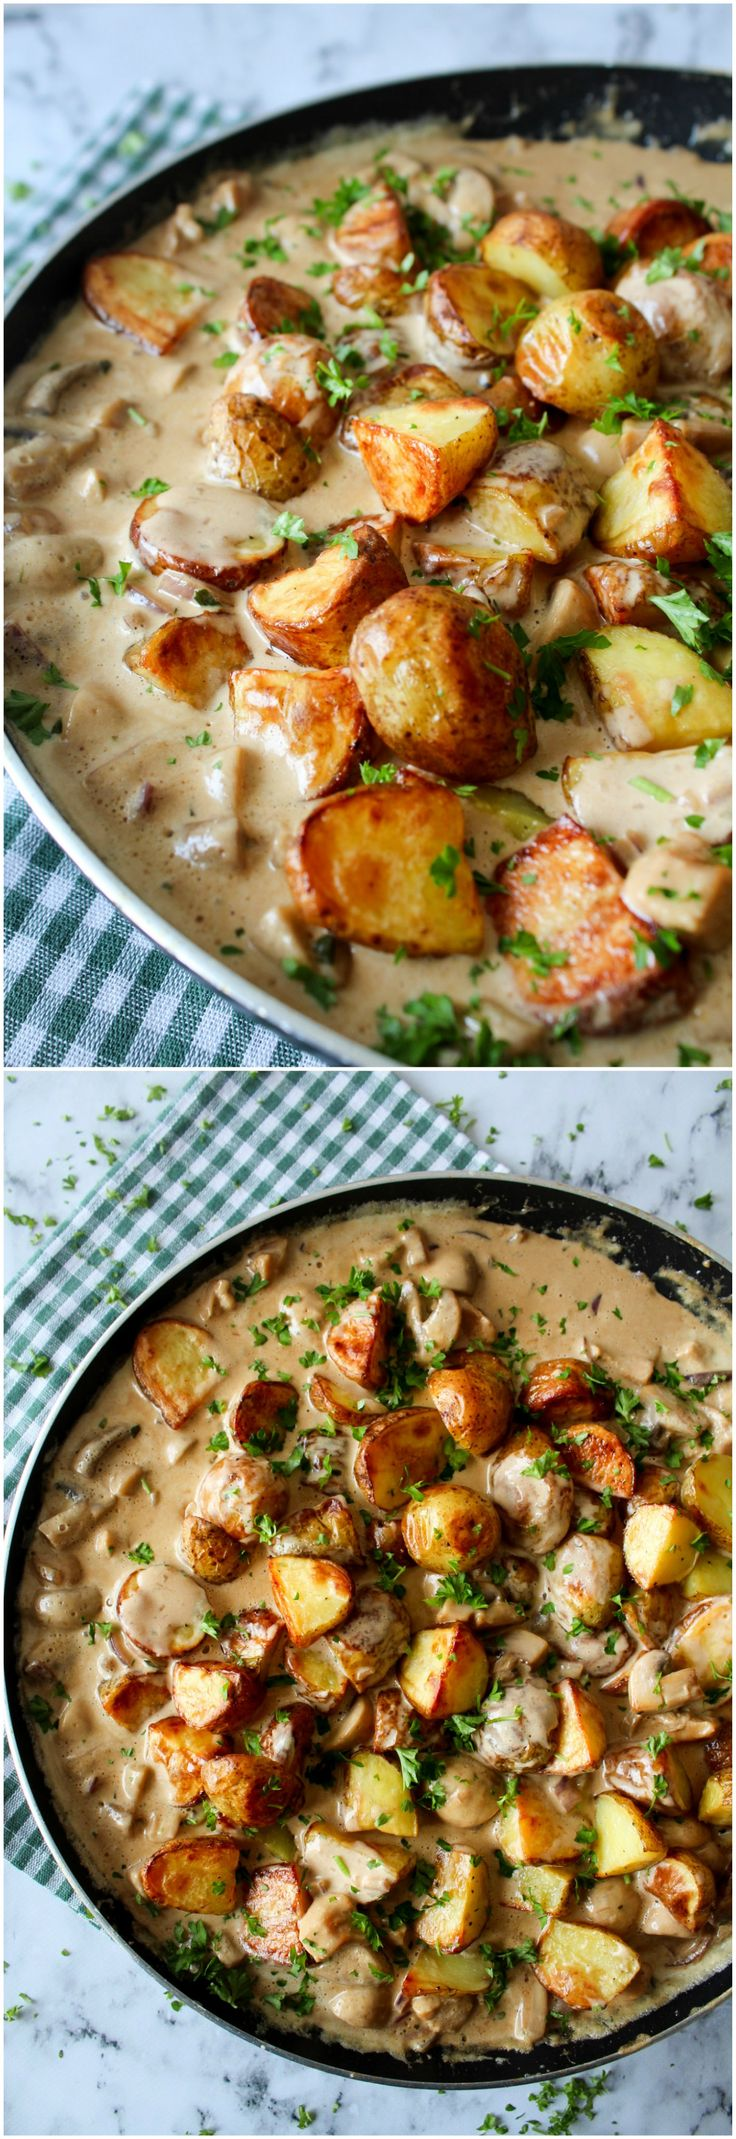 Ovenbaked potatoes in a delicious creamy chicken mushroom sauce!